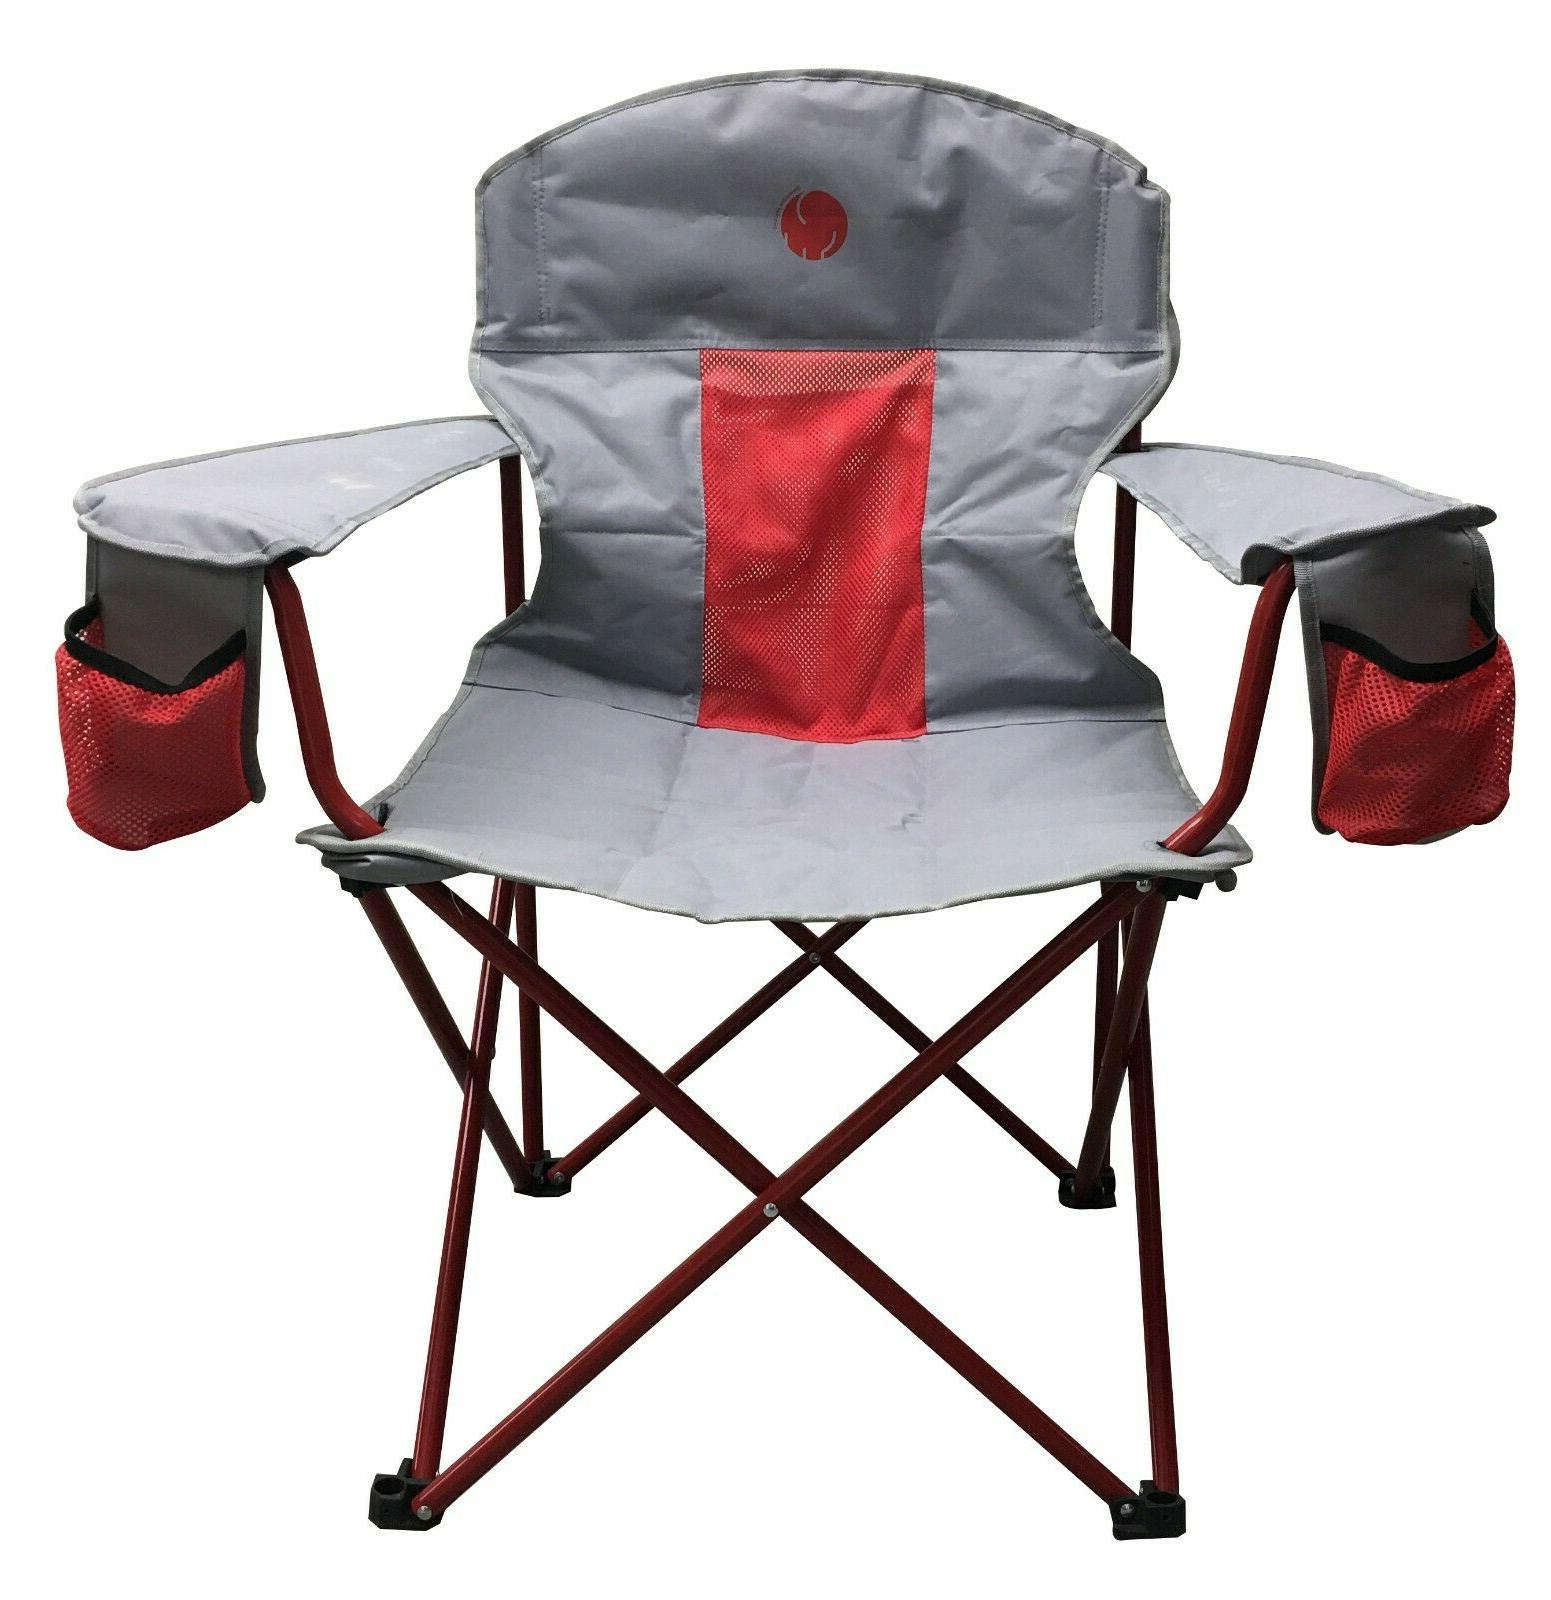 Heavy Duty Folding Camping Chair For Outdoor Sports Activiti